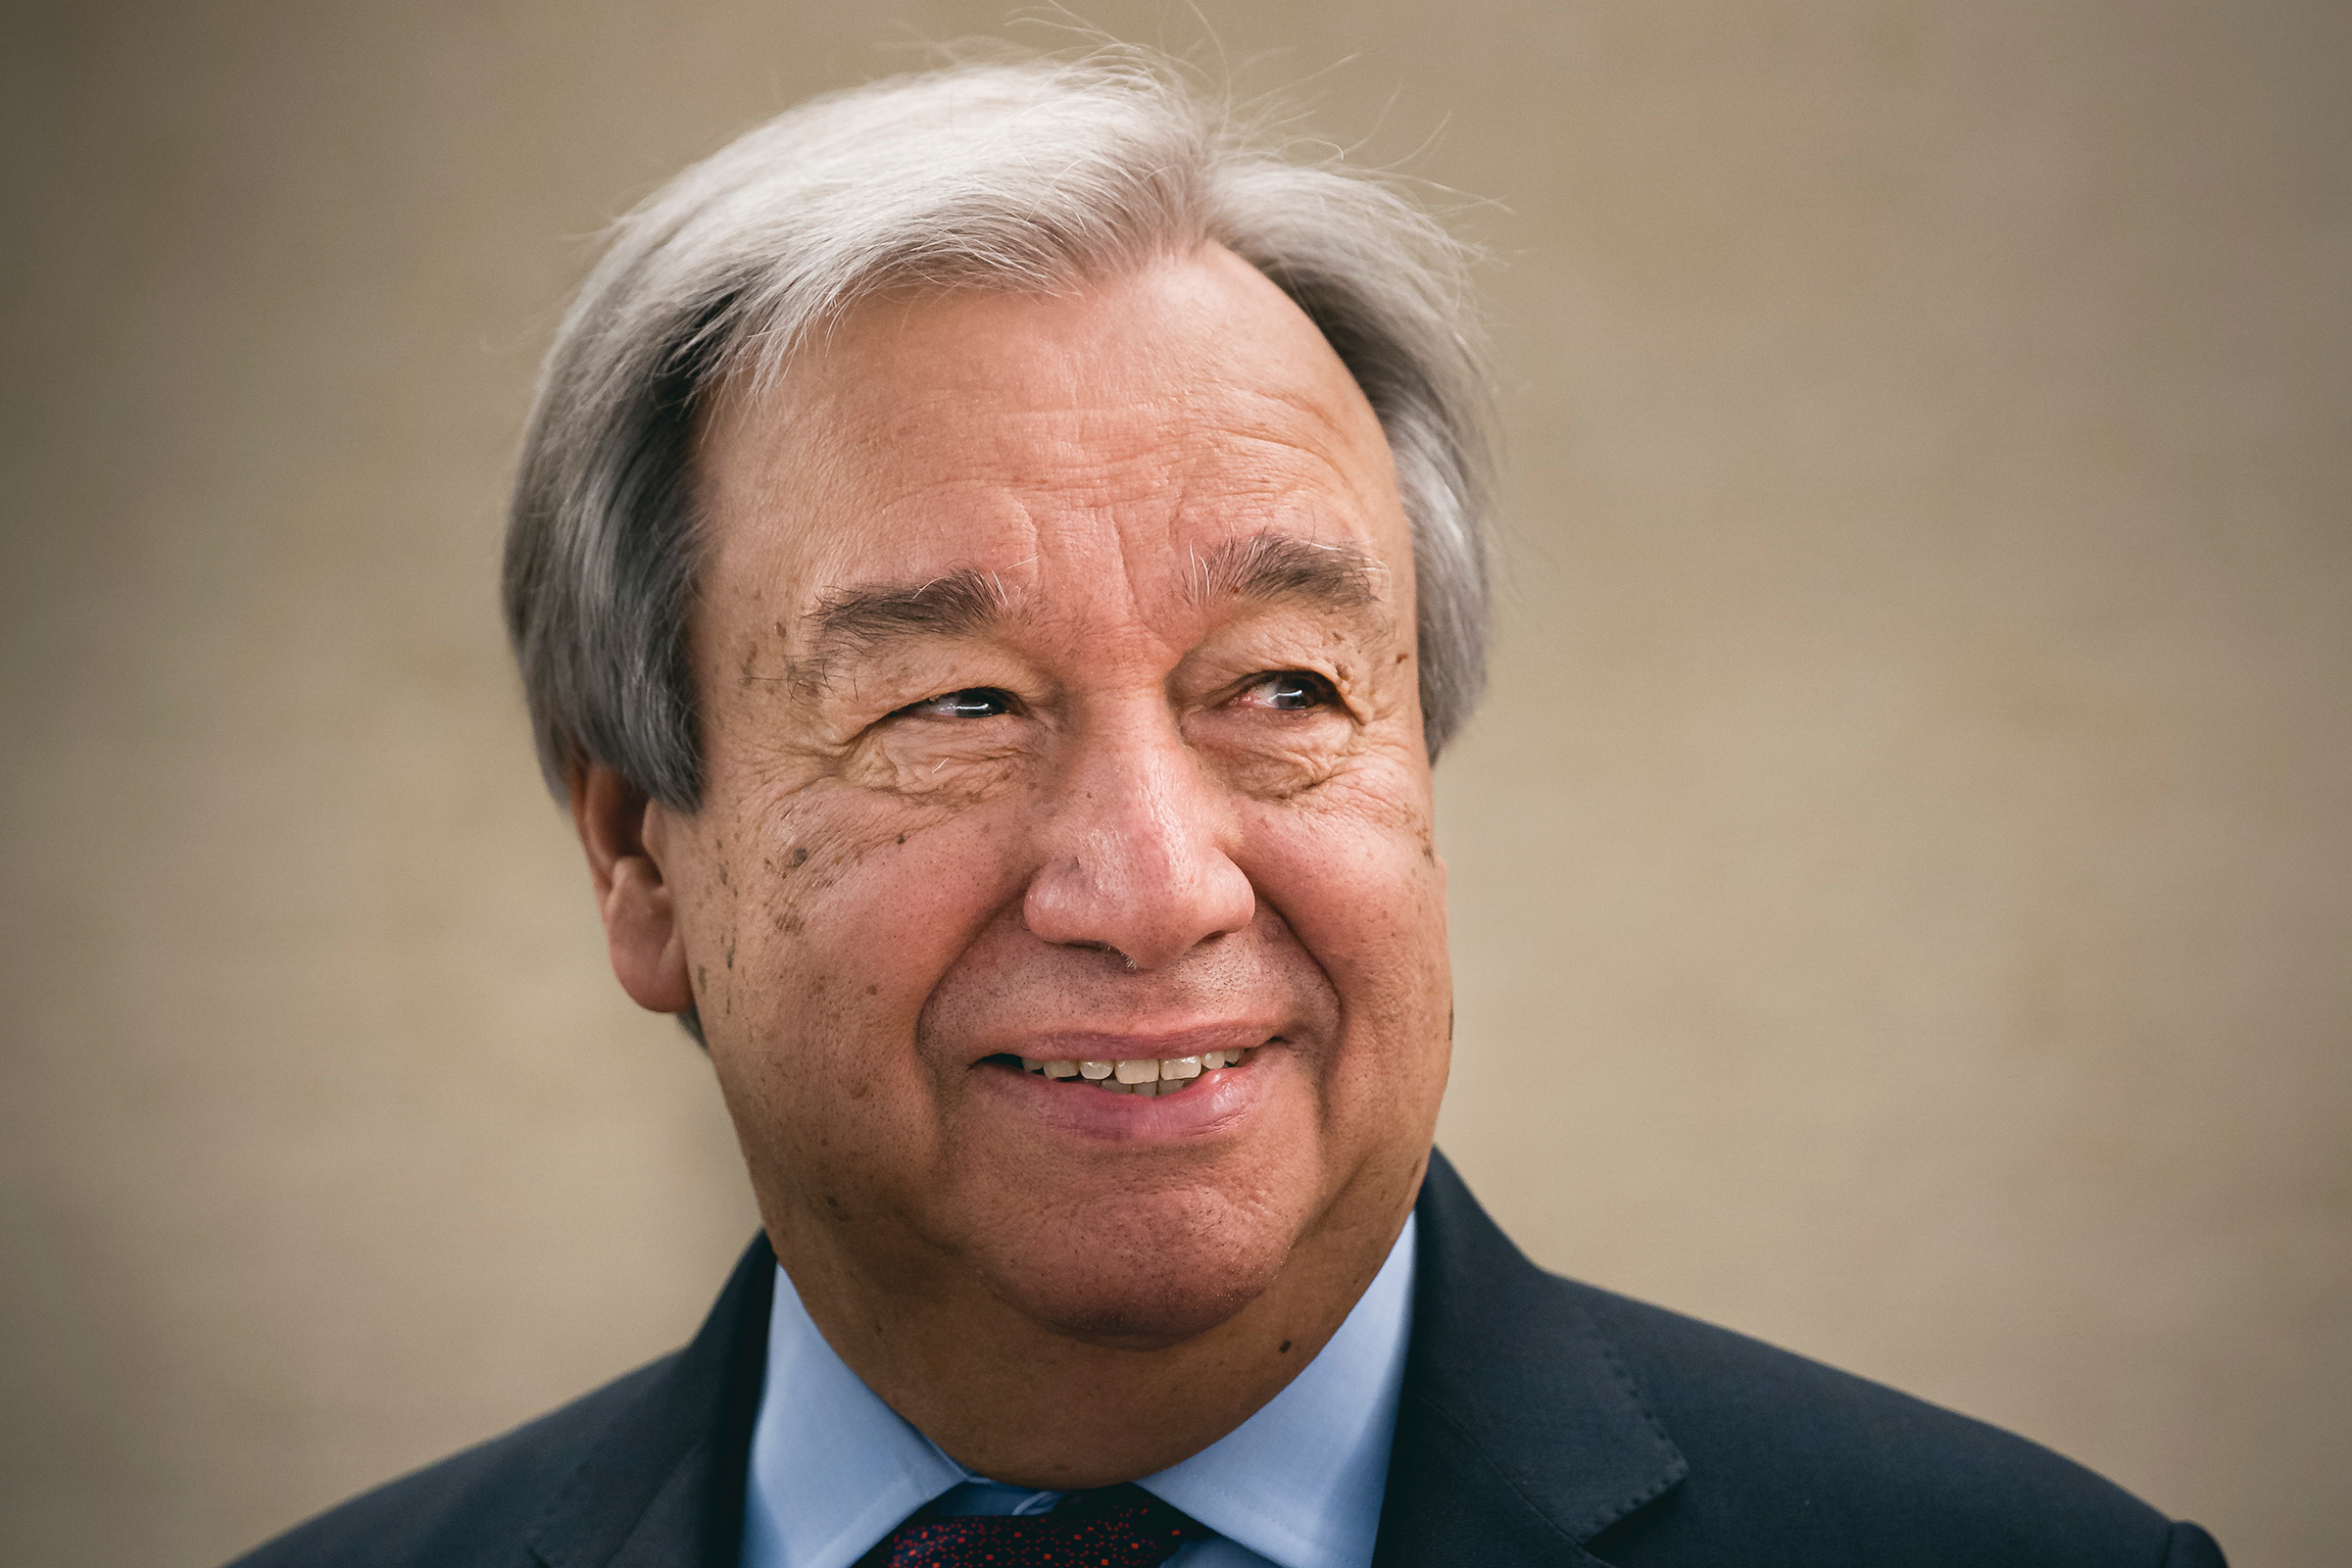 Antonio Guterres, Secretary General of the United Nations, admitted to the 43rd Human Rights Council at the Palais des Nations, on Feb. 24 in Geneva, Switzerland